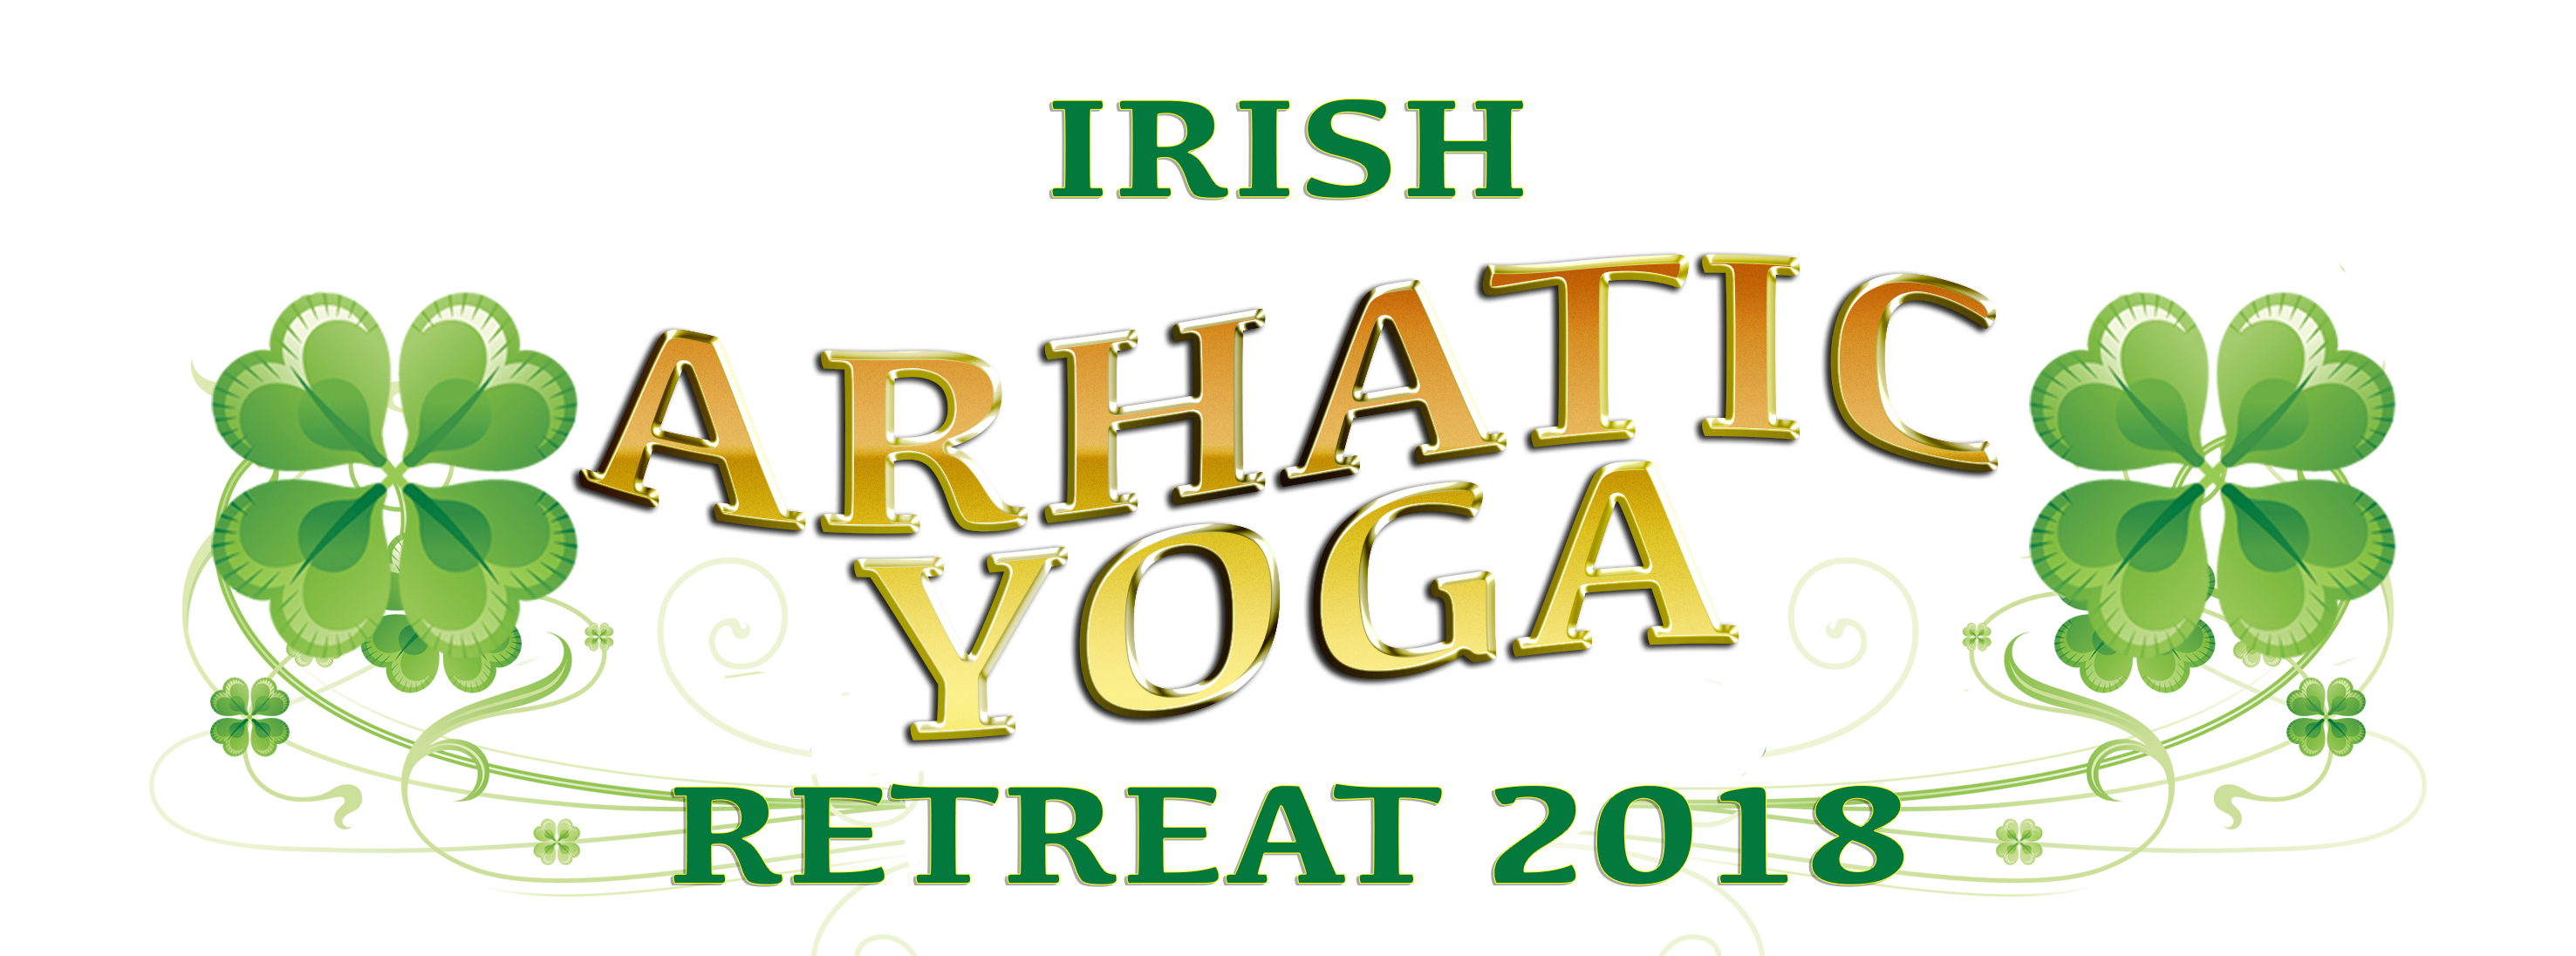 IrishRetreatLogo4